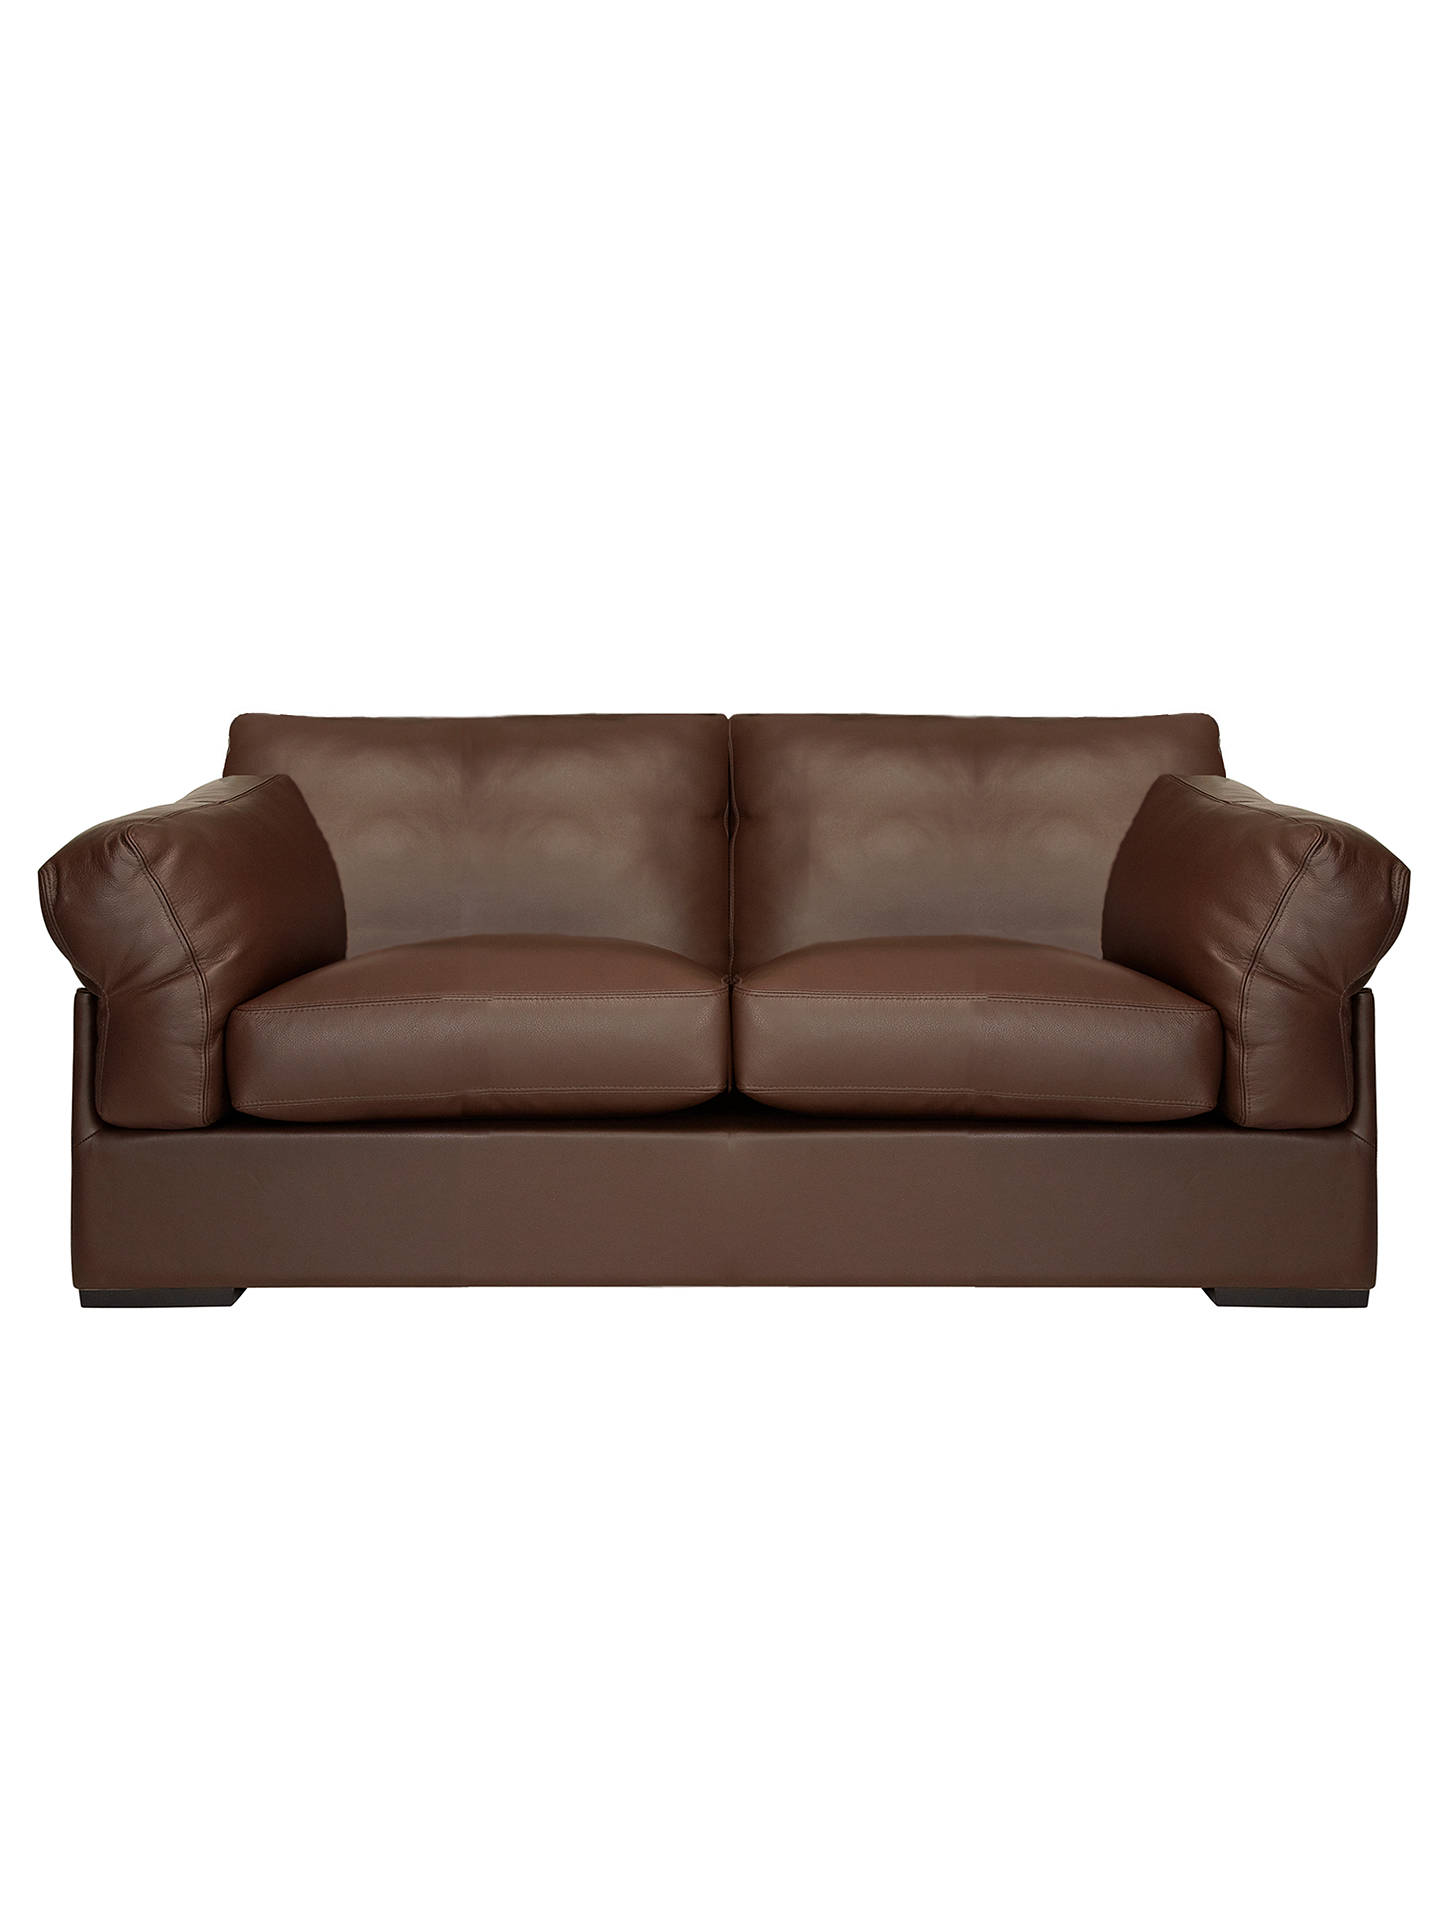 John Lewis Partners Java Medium 2 Seater Leather Sofa Nature Brown Online At Johnlewis